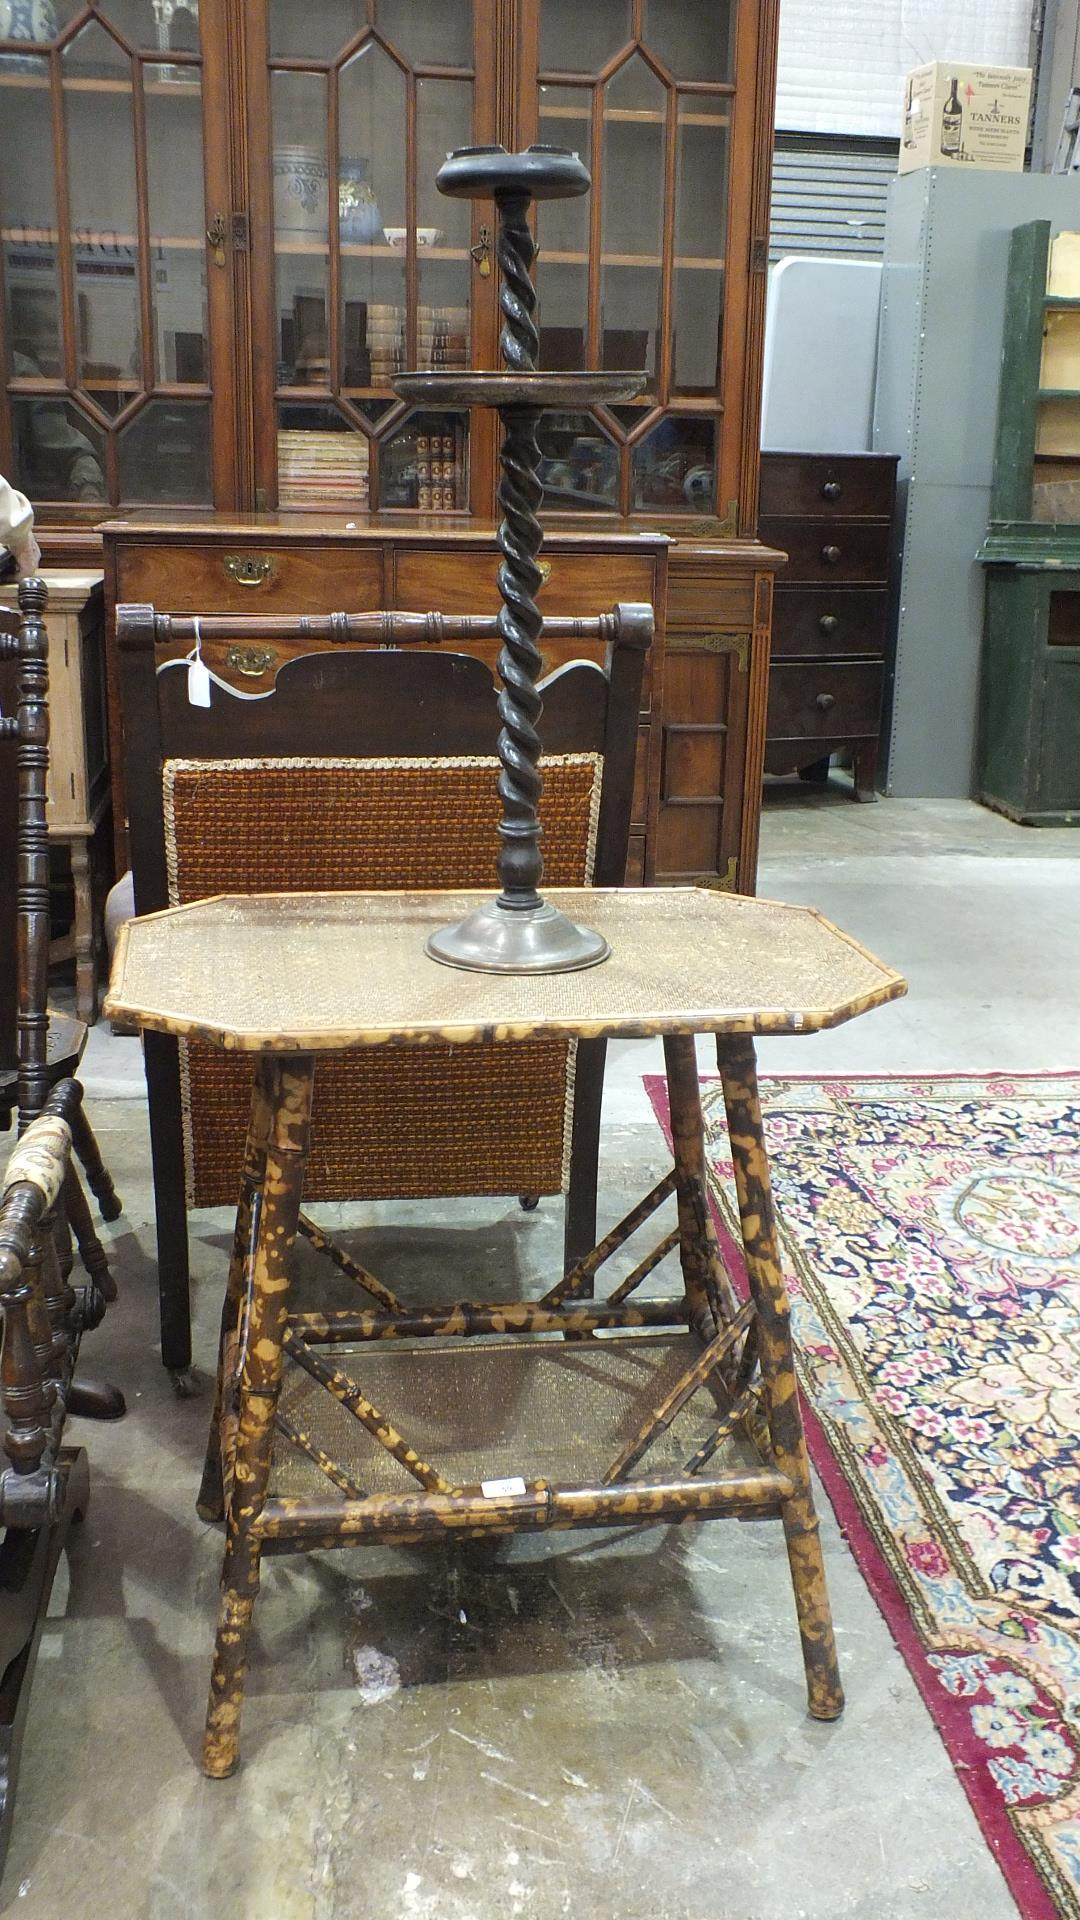 Lot 59 - A two-tier bamboo table and a smokers' stand.